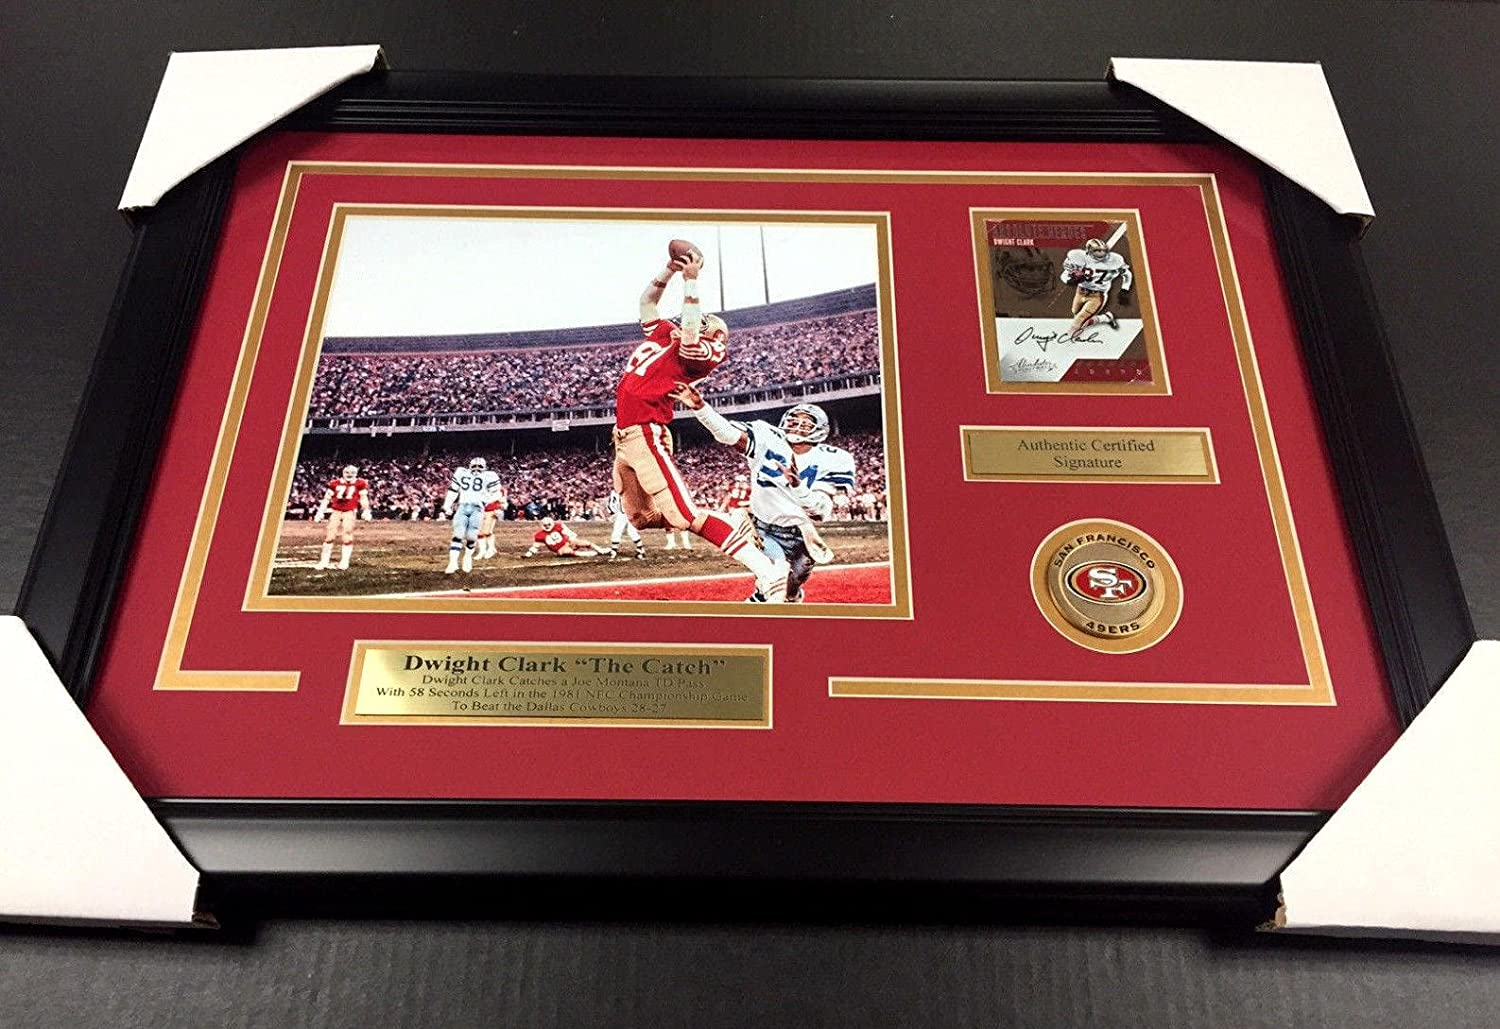 Dwight Clark The Catch Autographed Card Framed San Francisco 49'ers 8x10  Photo - Autographed NFL Photos at Amazon's Sports Collectibles Store